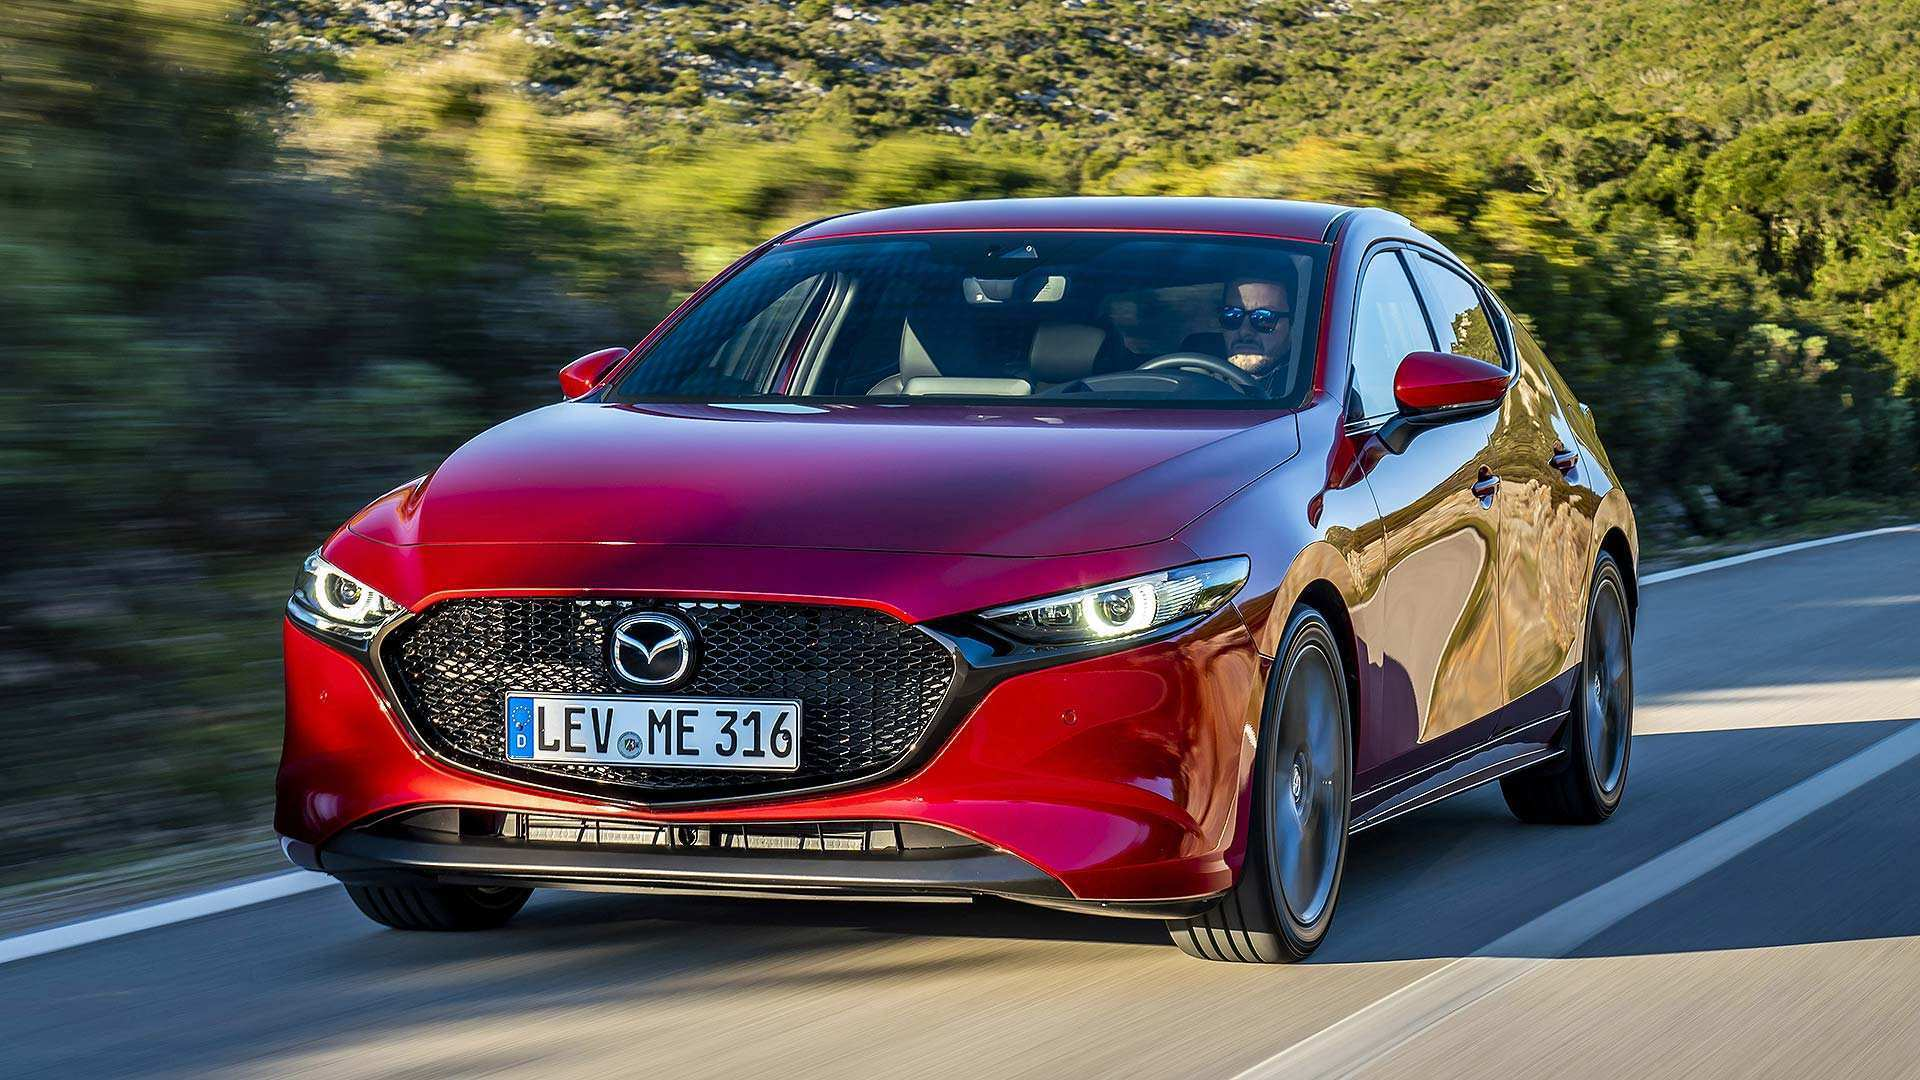 35 Concept of Mazda 3 2019 Specs Pricing for Mazda 3 2019 Specs